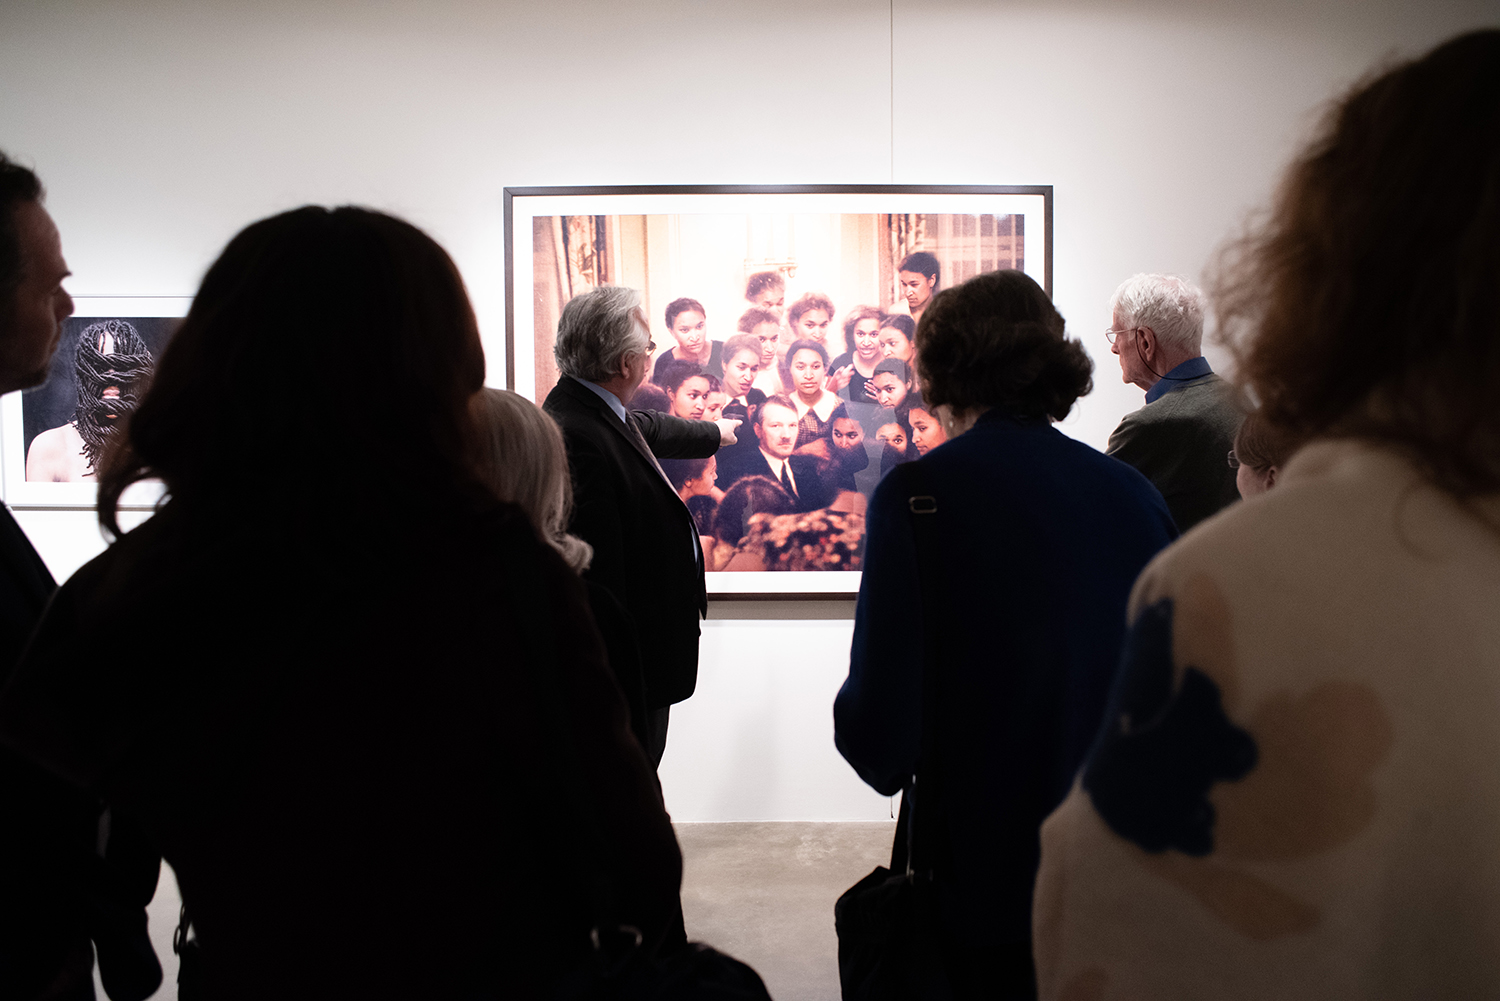 Patrons viewing art in the museum